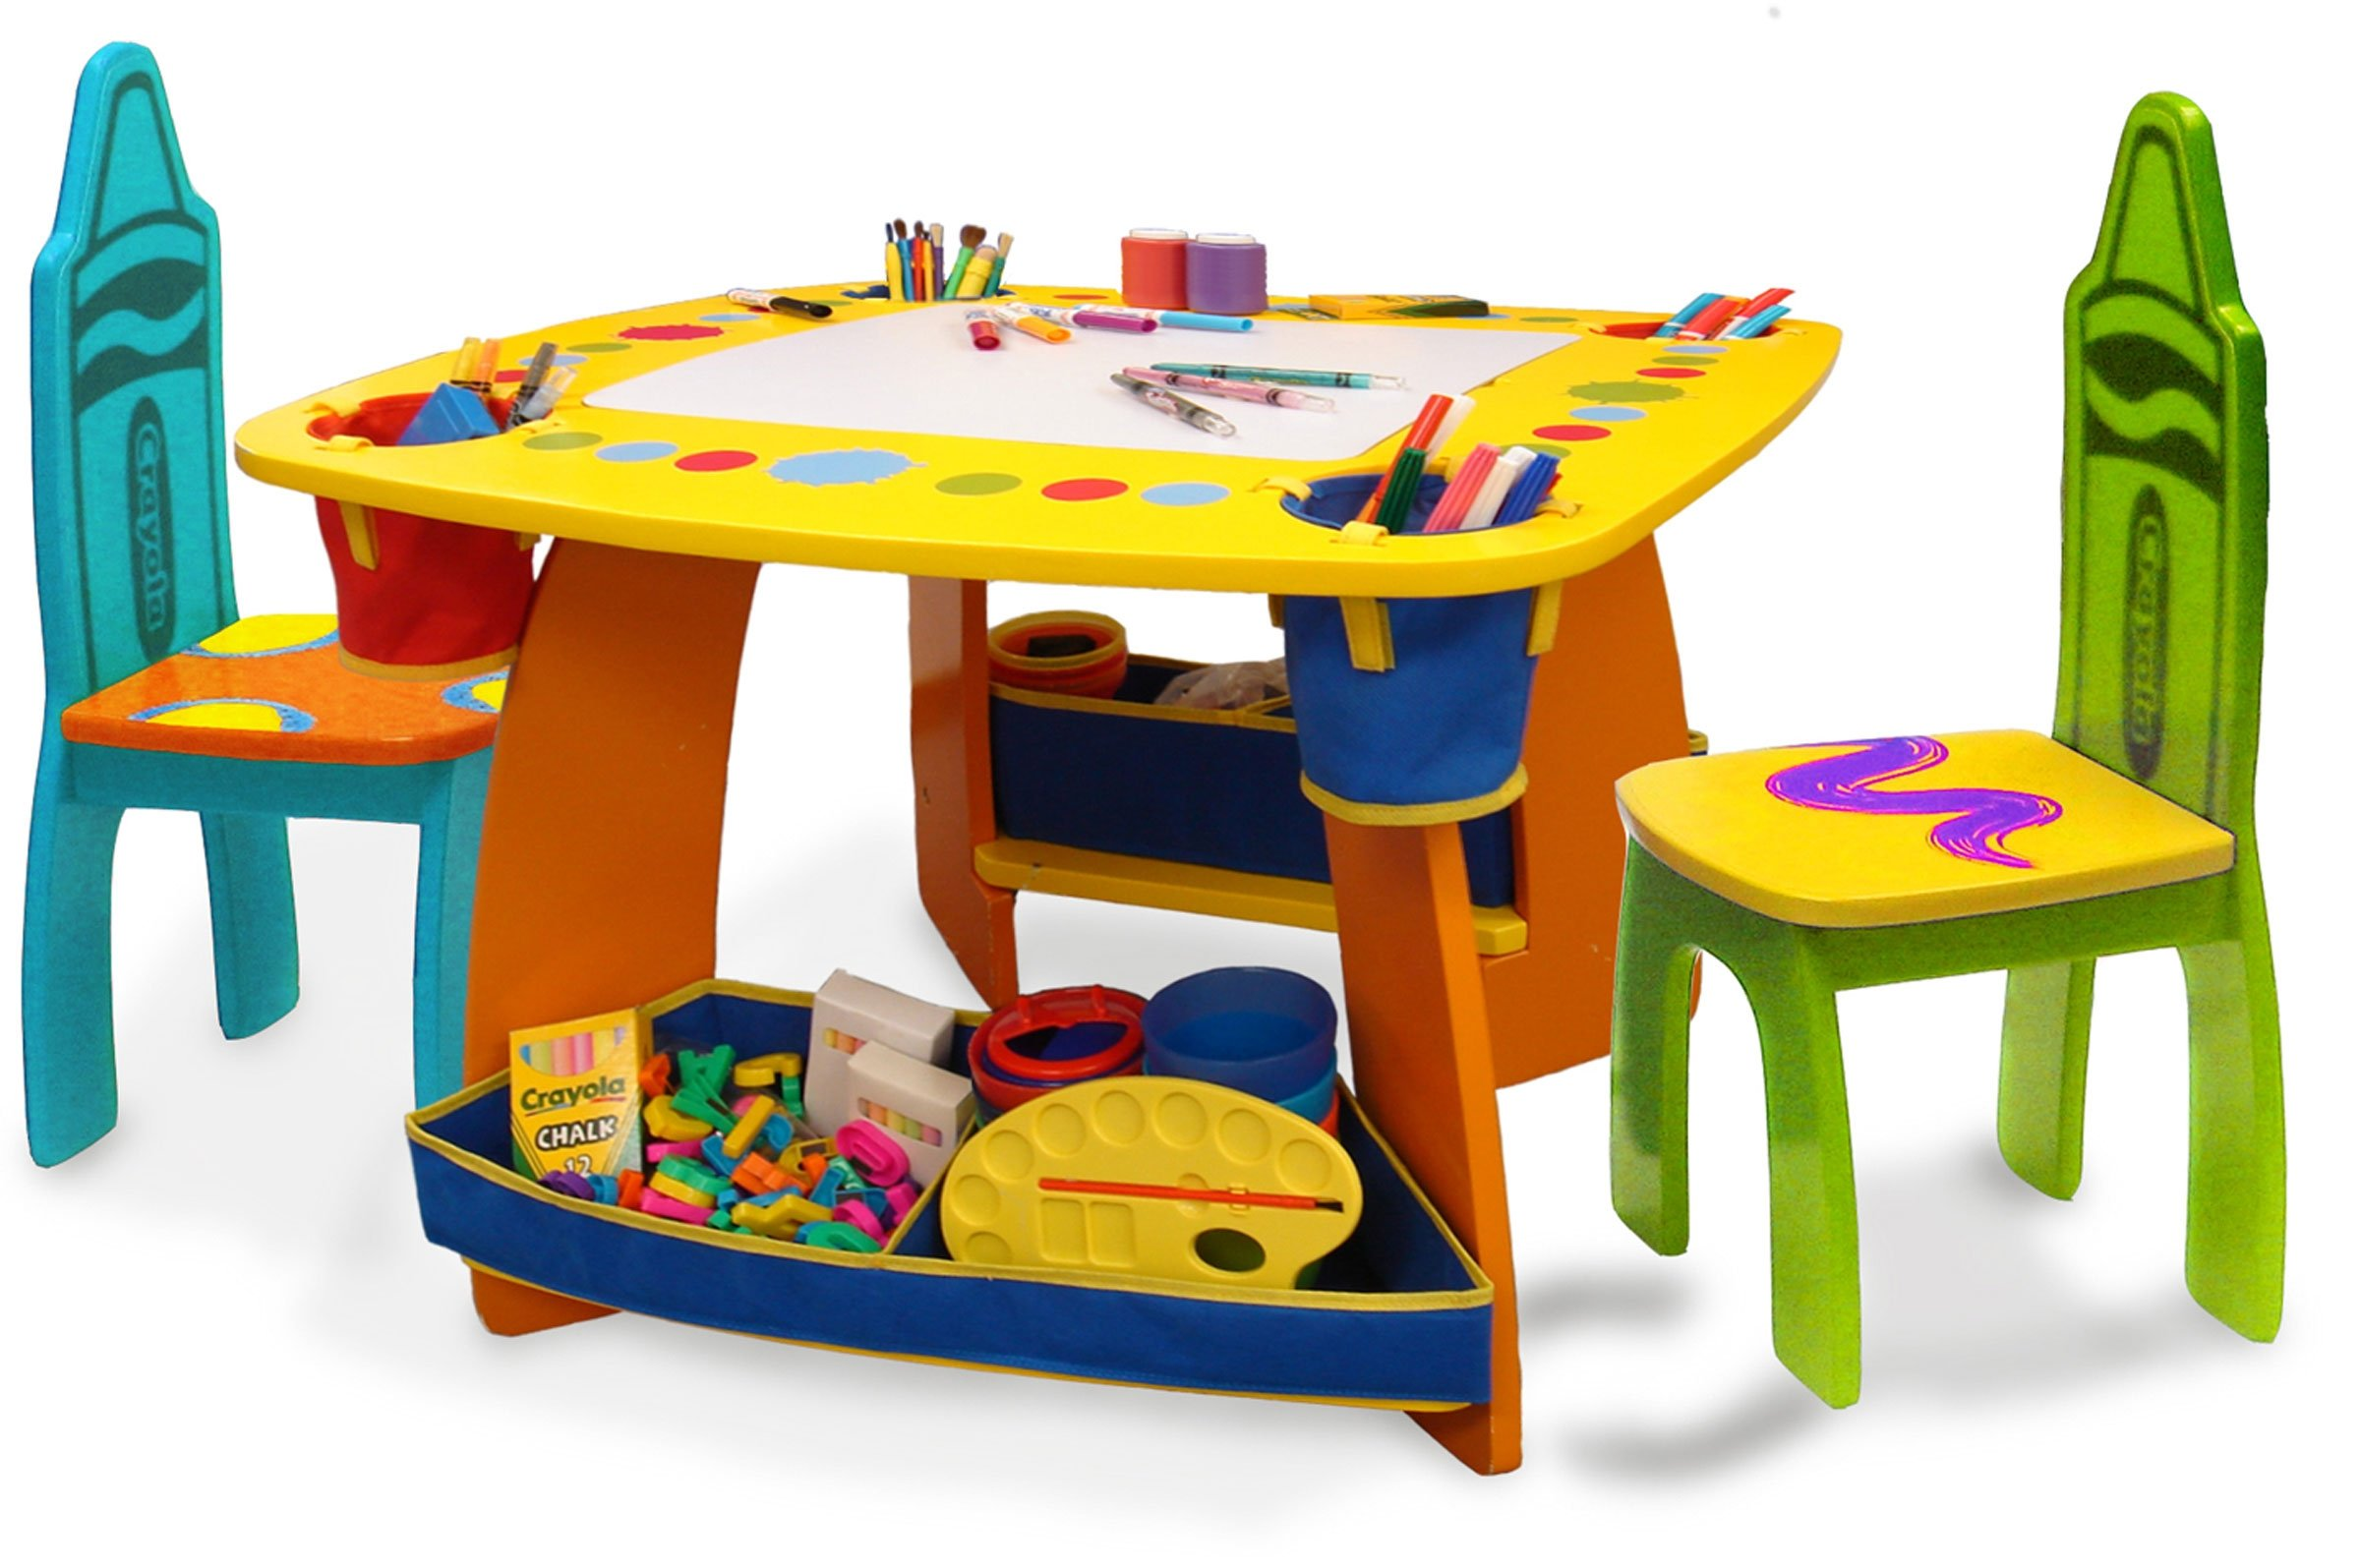 Crayola Wooden Table And Chair Set by Crayola